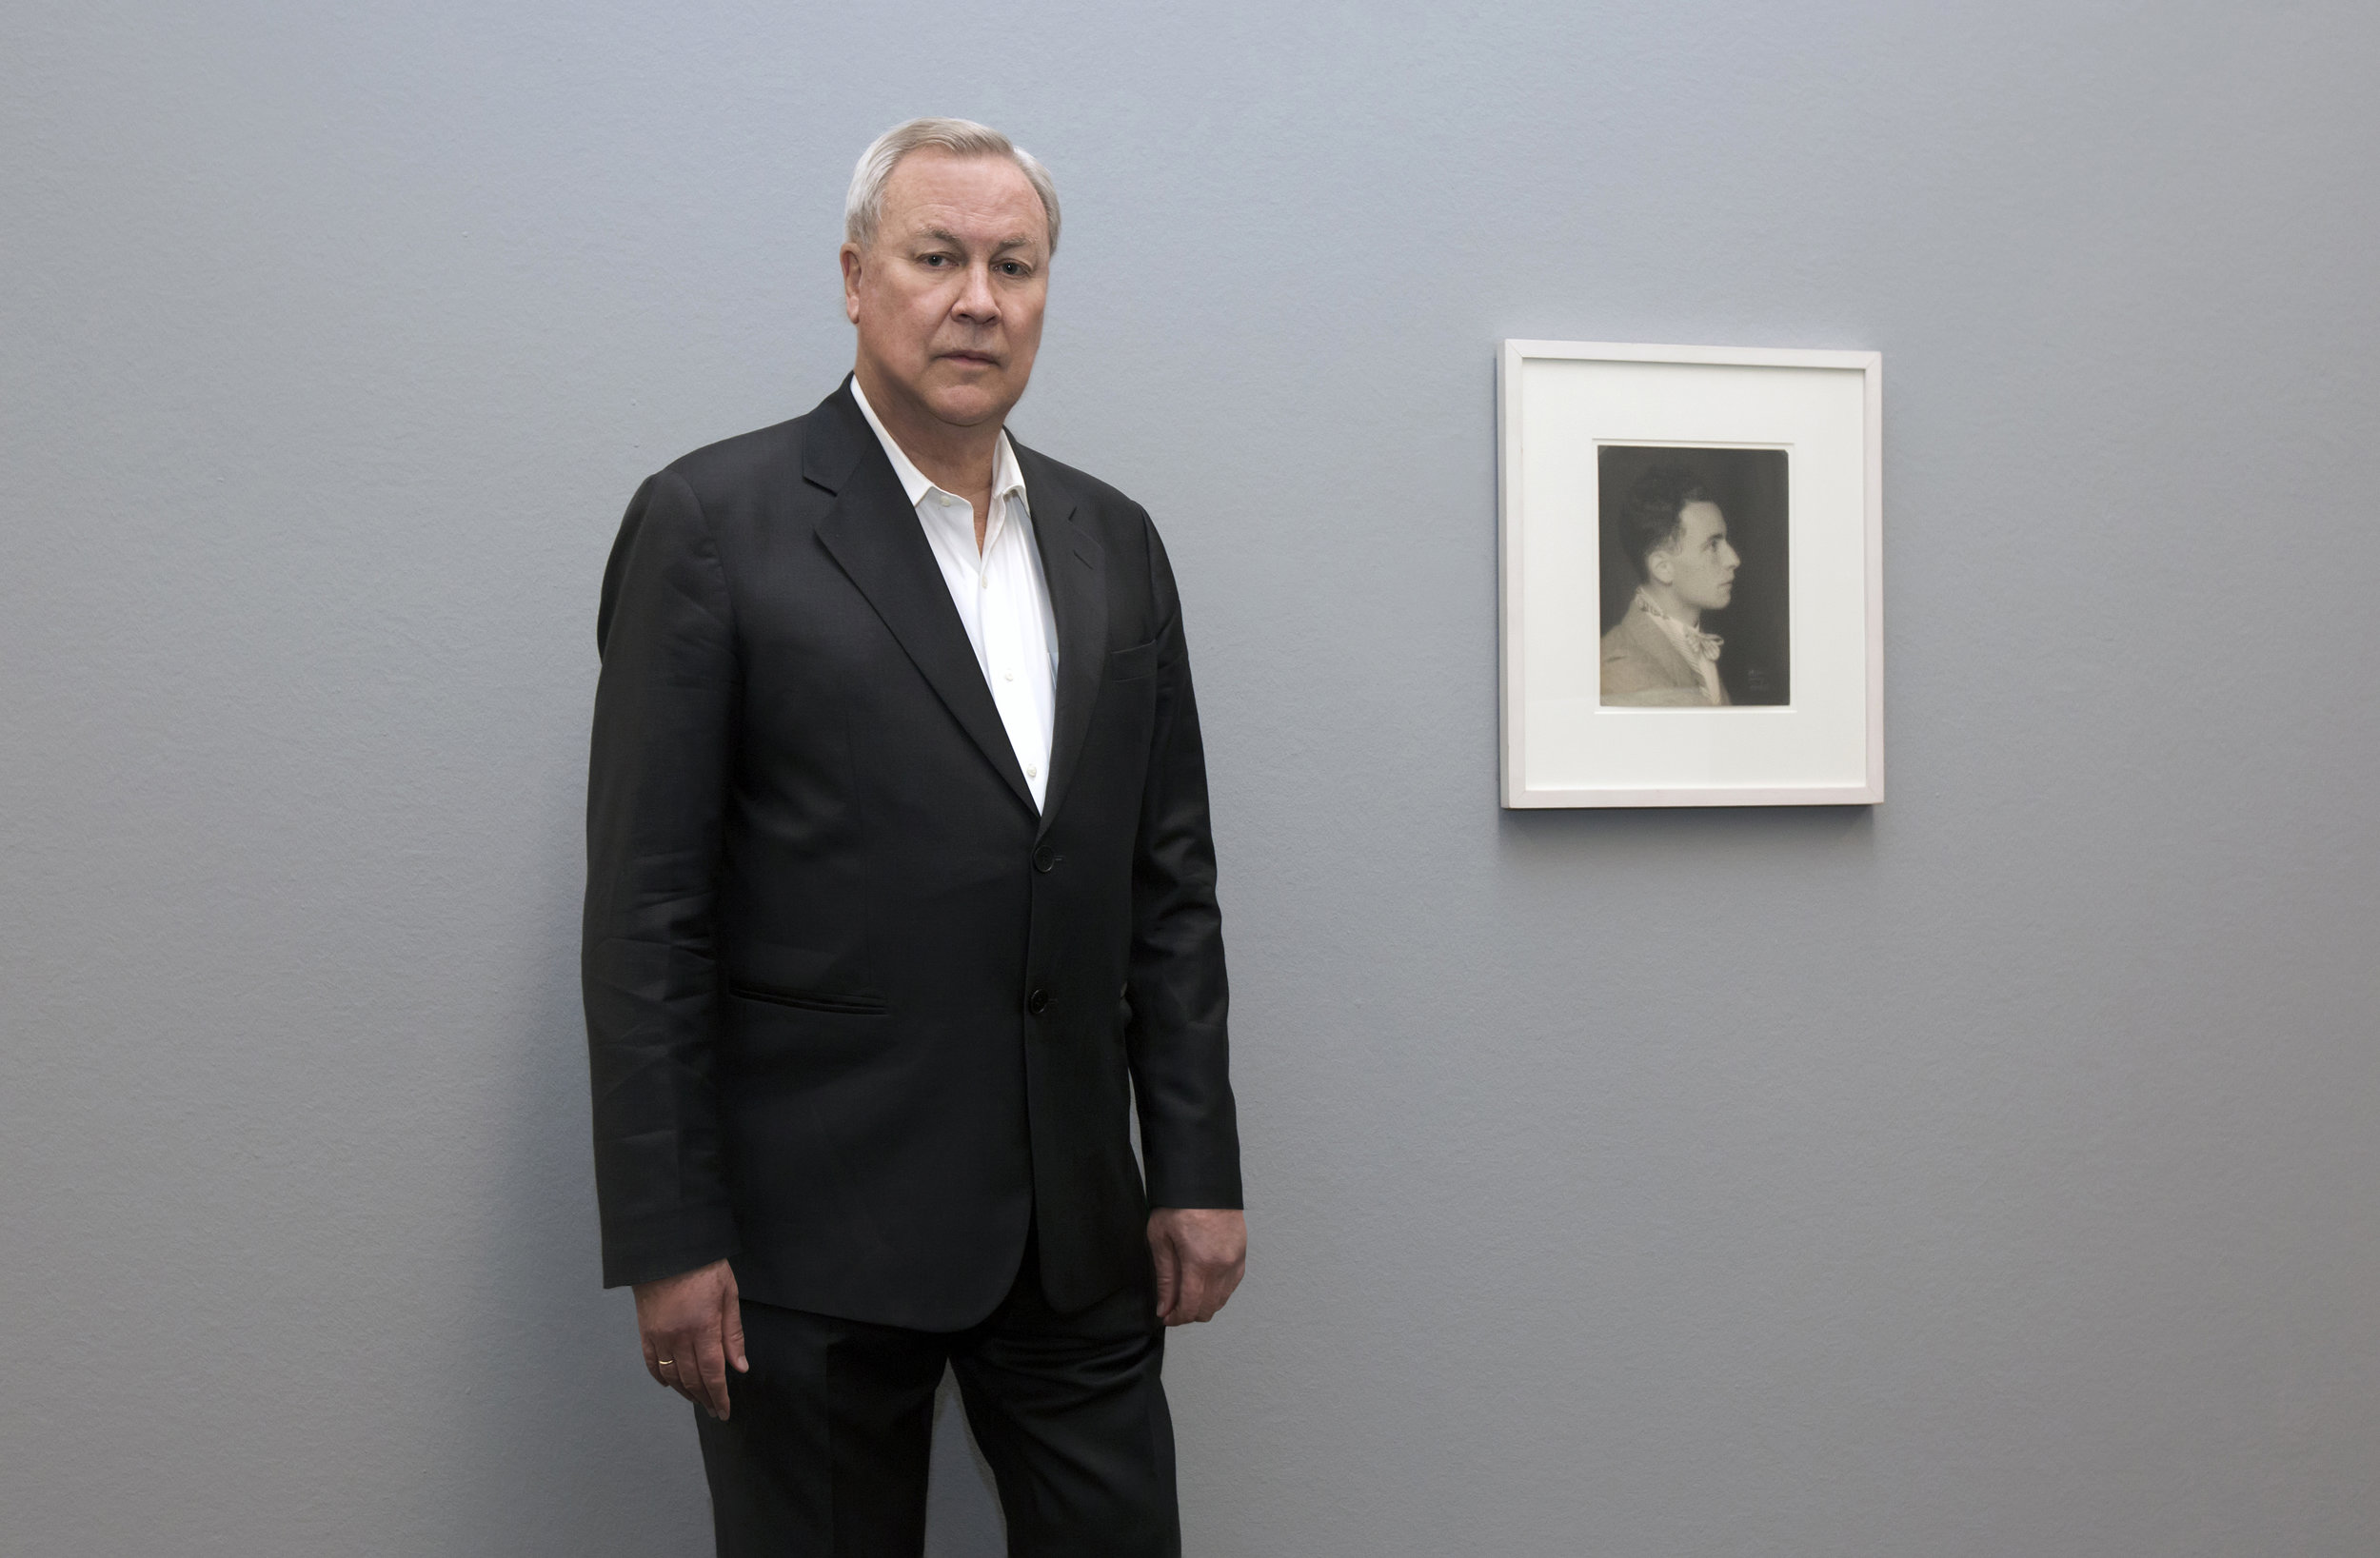 Robert Wilson at the Max Ernst Museum, with a photo of Louis Aragon by Man Ray (c.1925) - Photograph © Lucie Jansch